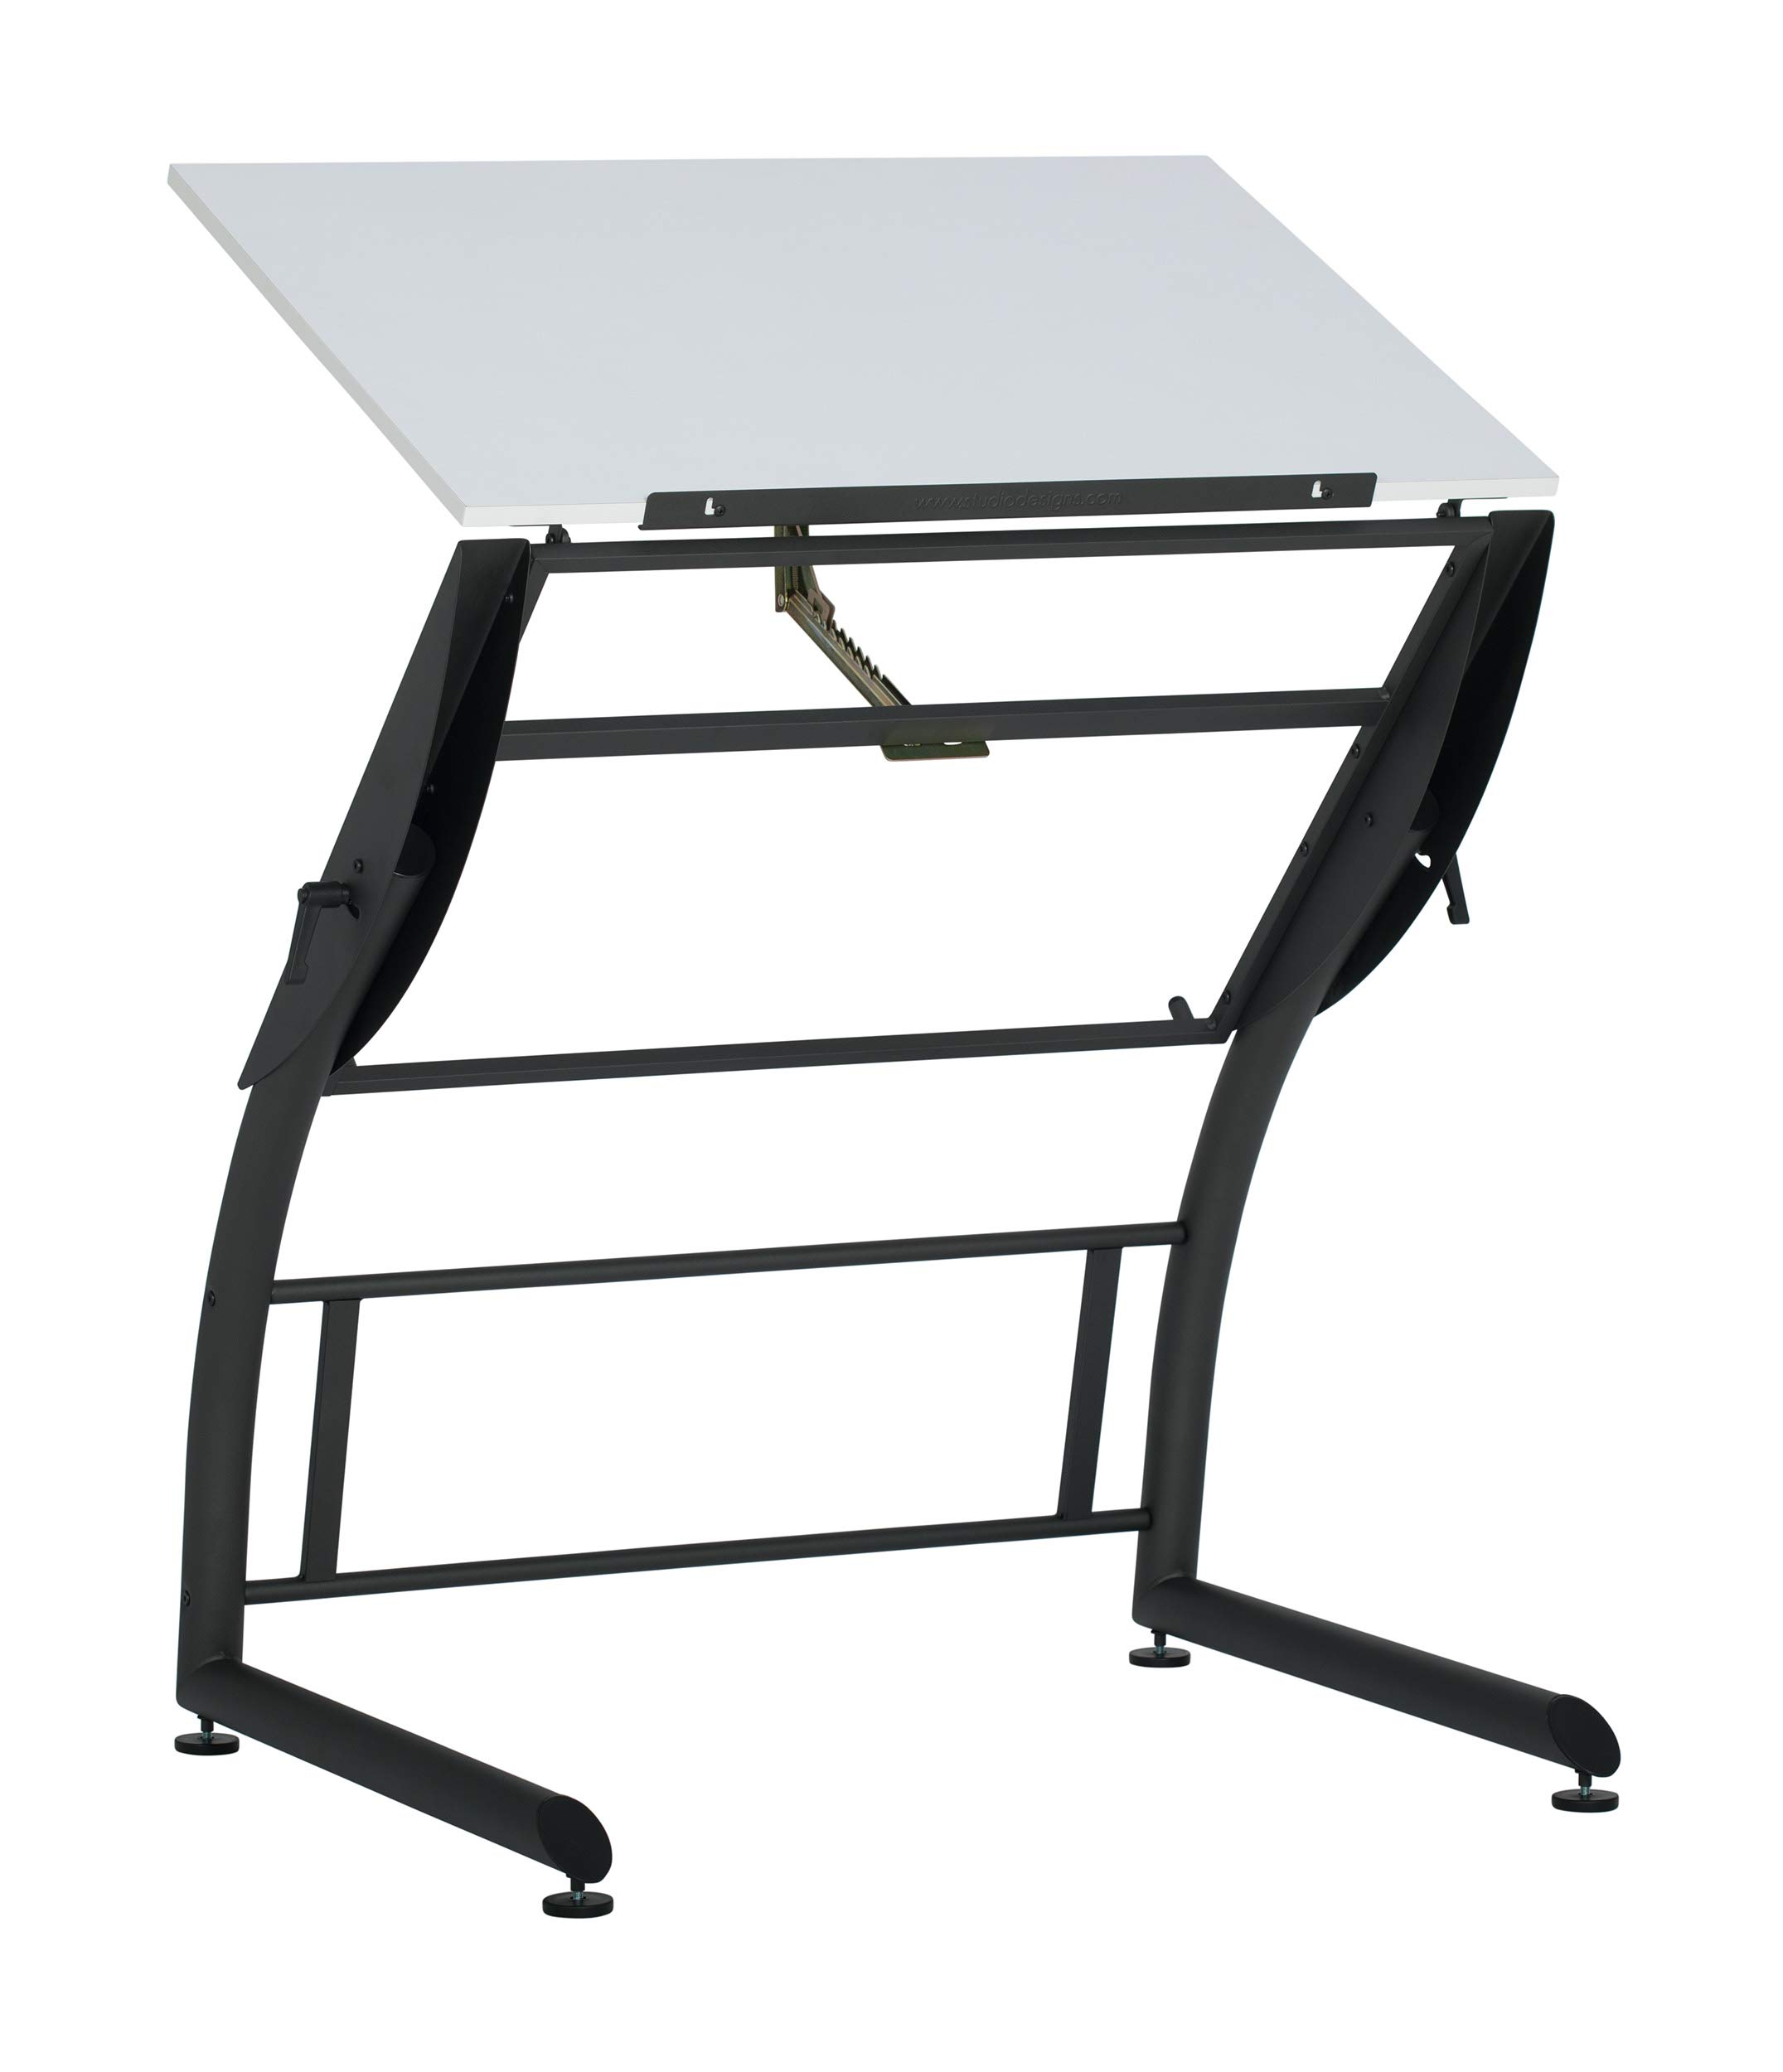 SD STUDIO DESIGNS Triflex Drawing Table, Sit to Stand Up Adjustable Office Home Computer Desk, 35.25''W X 23.5''D, Charcoal Black/White by SD STUDIO DESIGNS